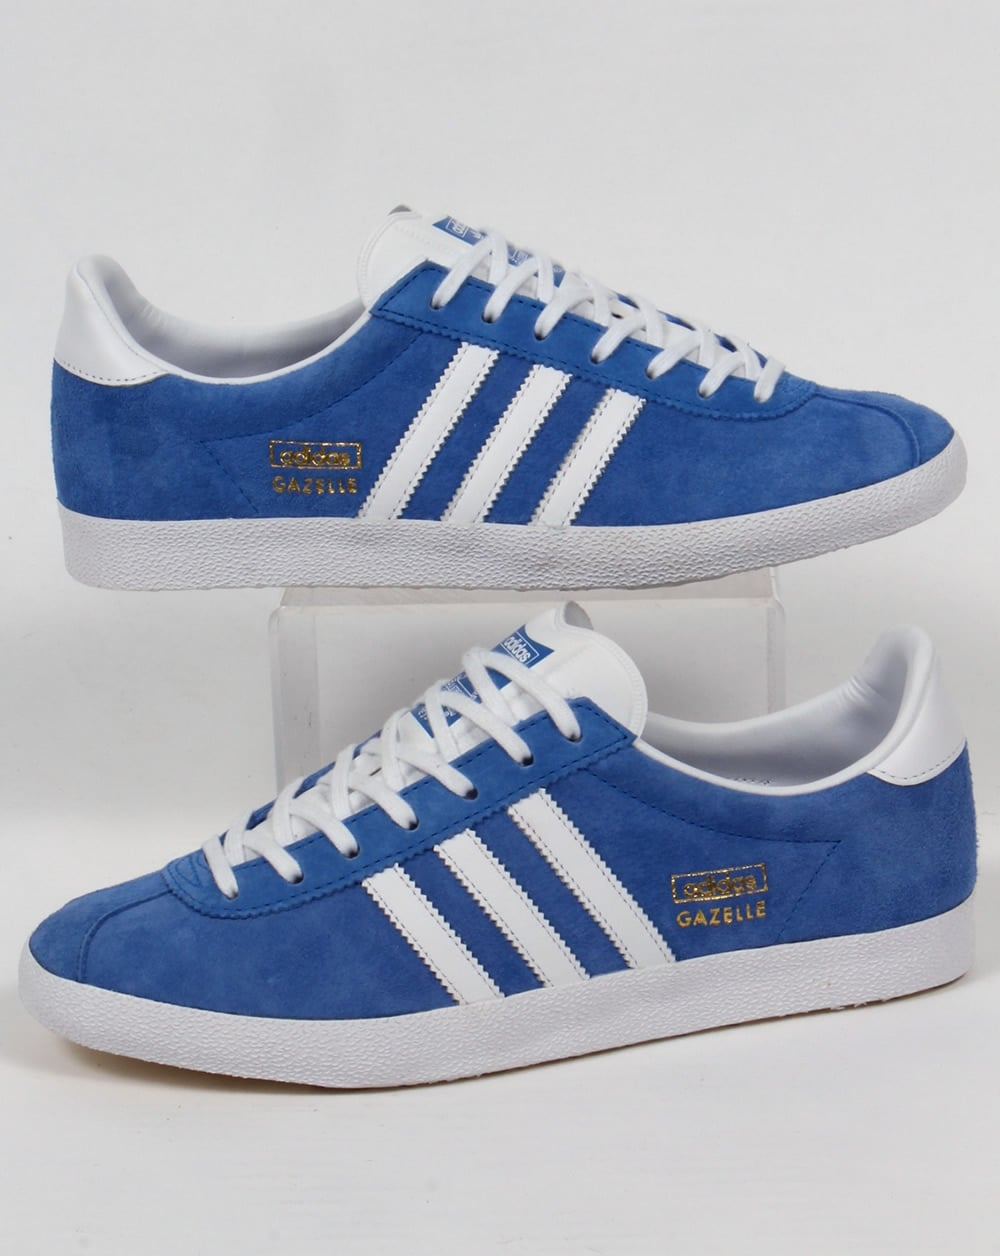 Buy adidas gazelle blue leather   OFF42% Discounted 0ed278026cff